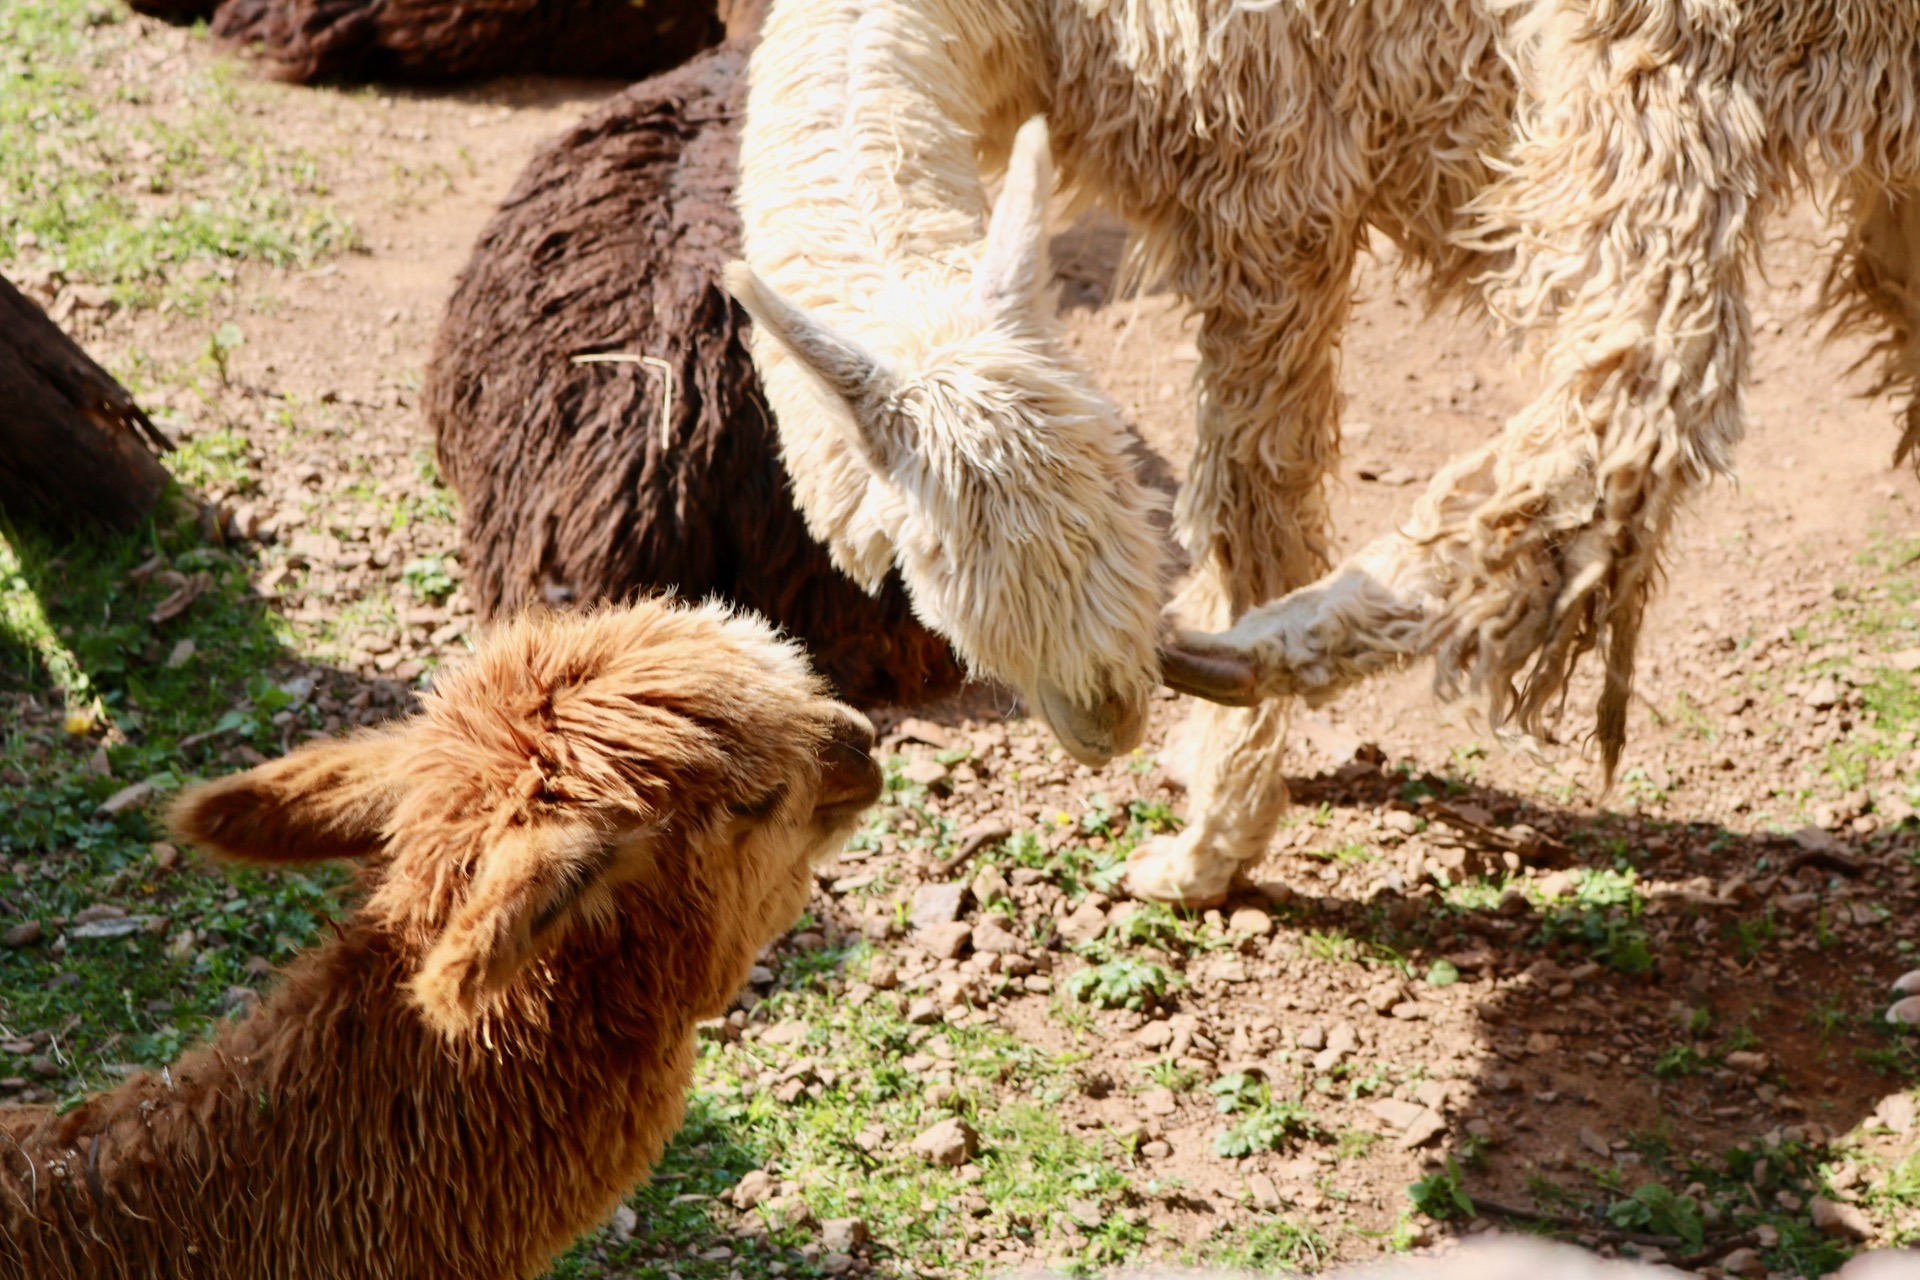 Another of their incredible talents: The ability to scratch their face with their back hooves. It'd be like if I could soothe an itch on my face with my foot. Simply amazing.